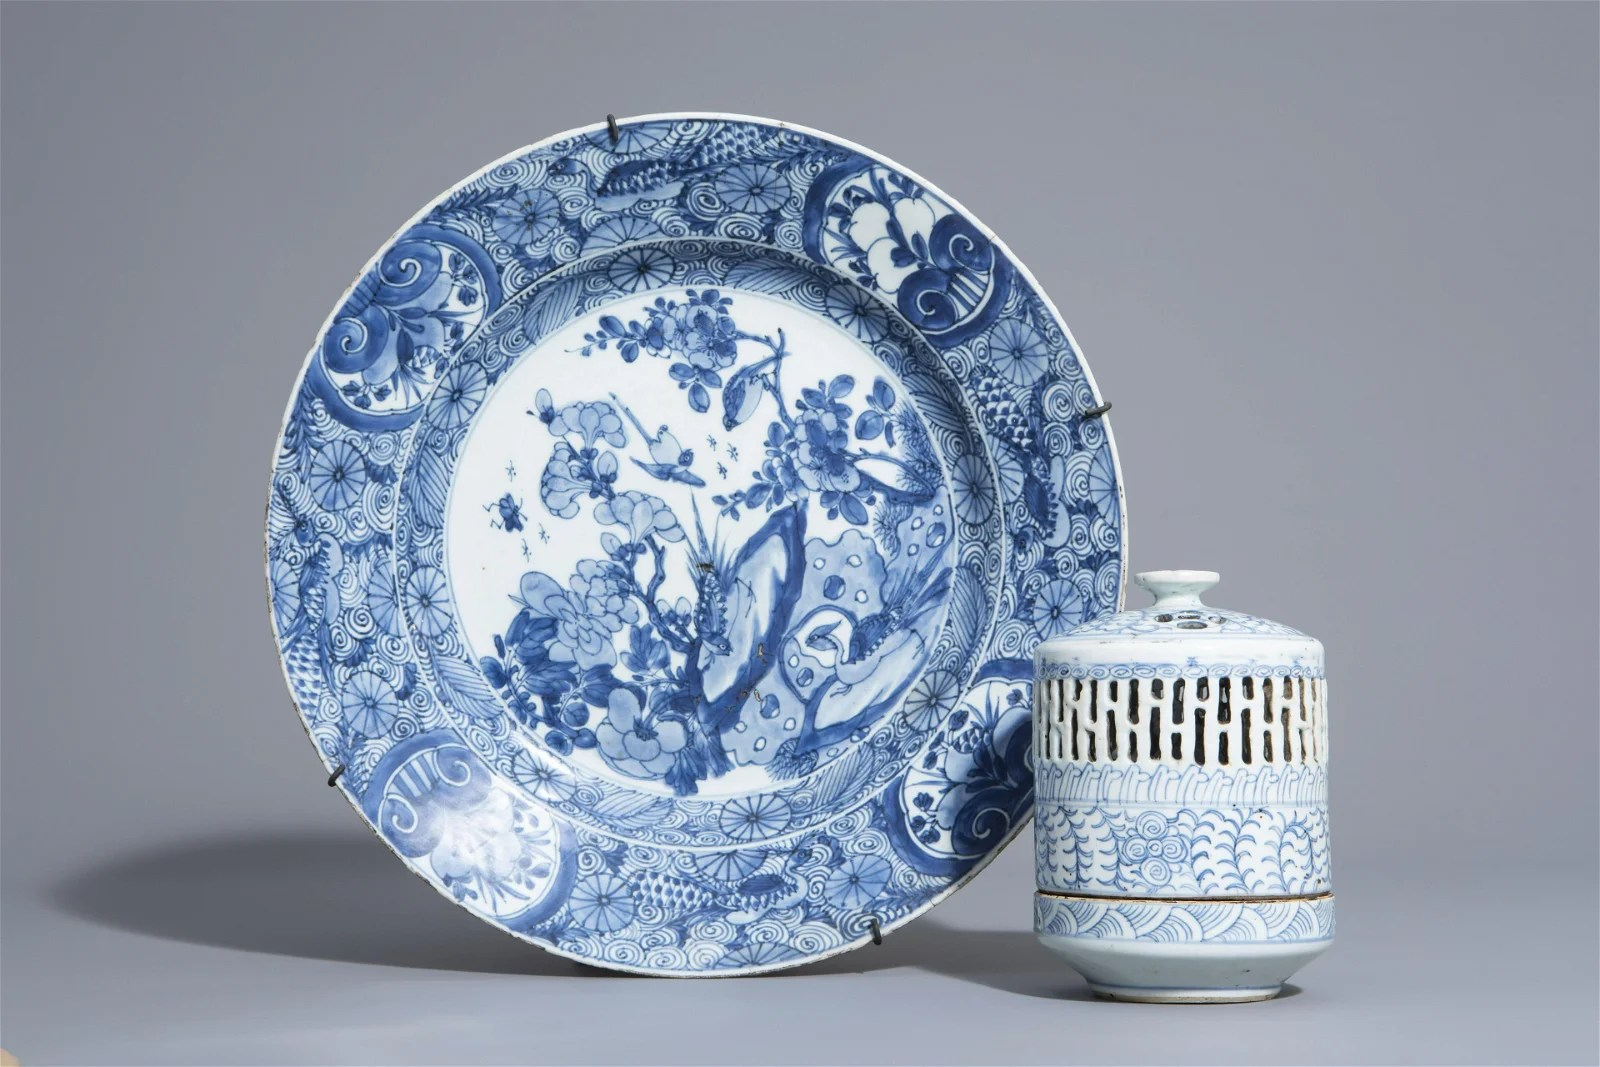 A Chinese blue and white charger and a Peranakan or